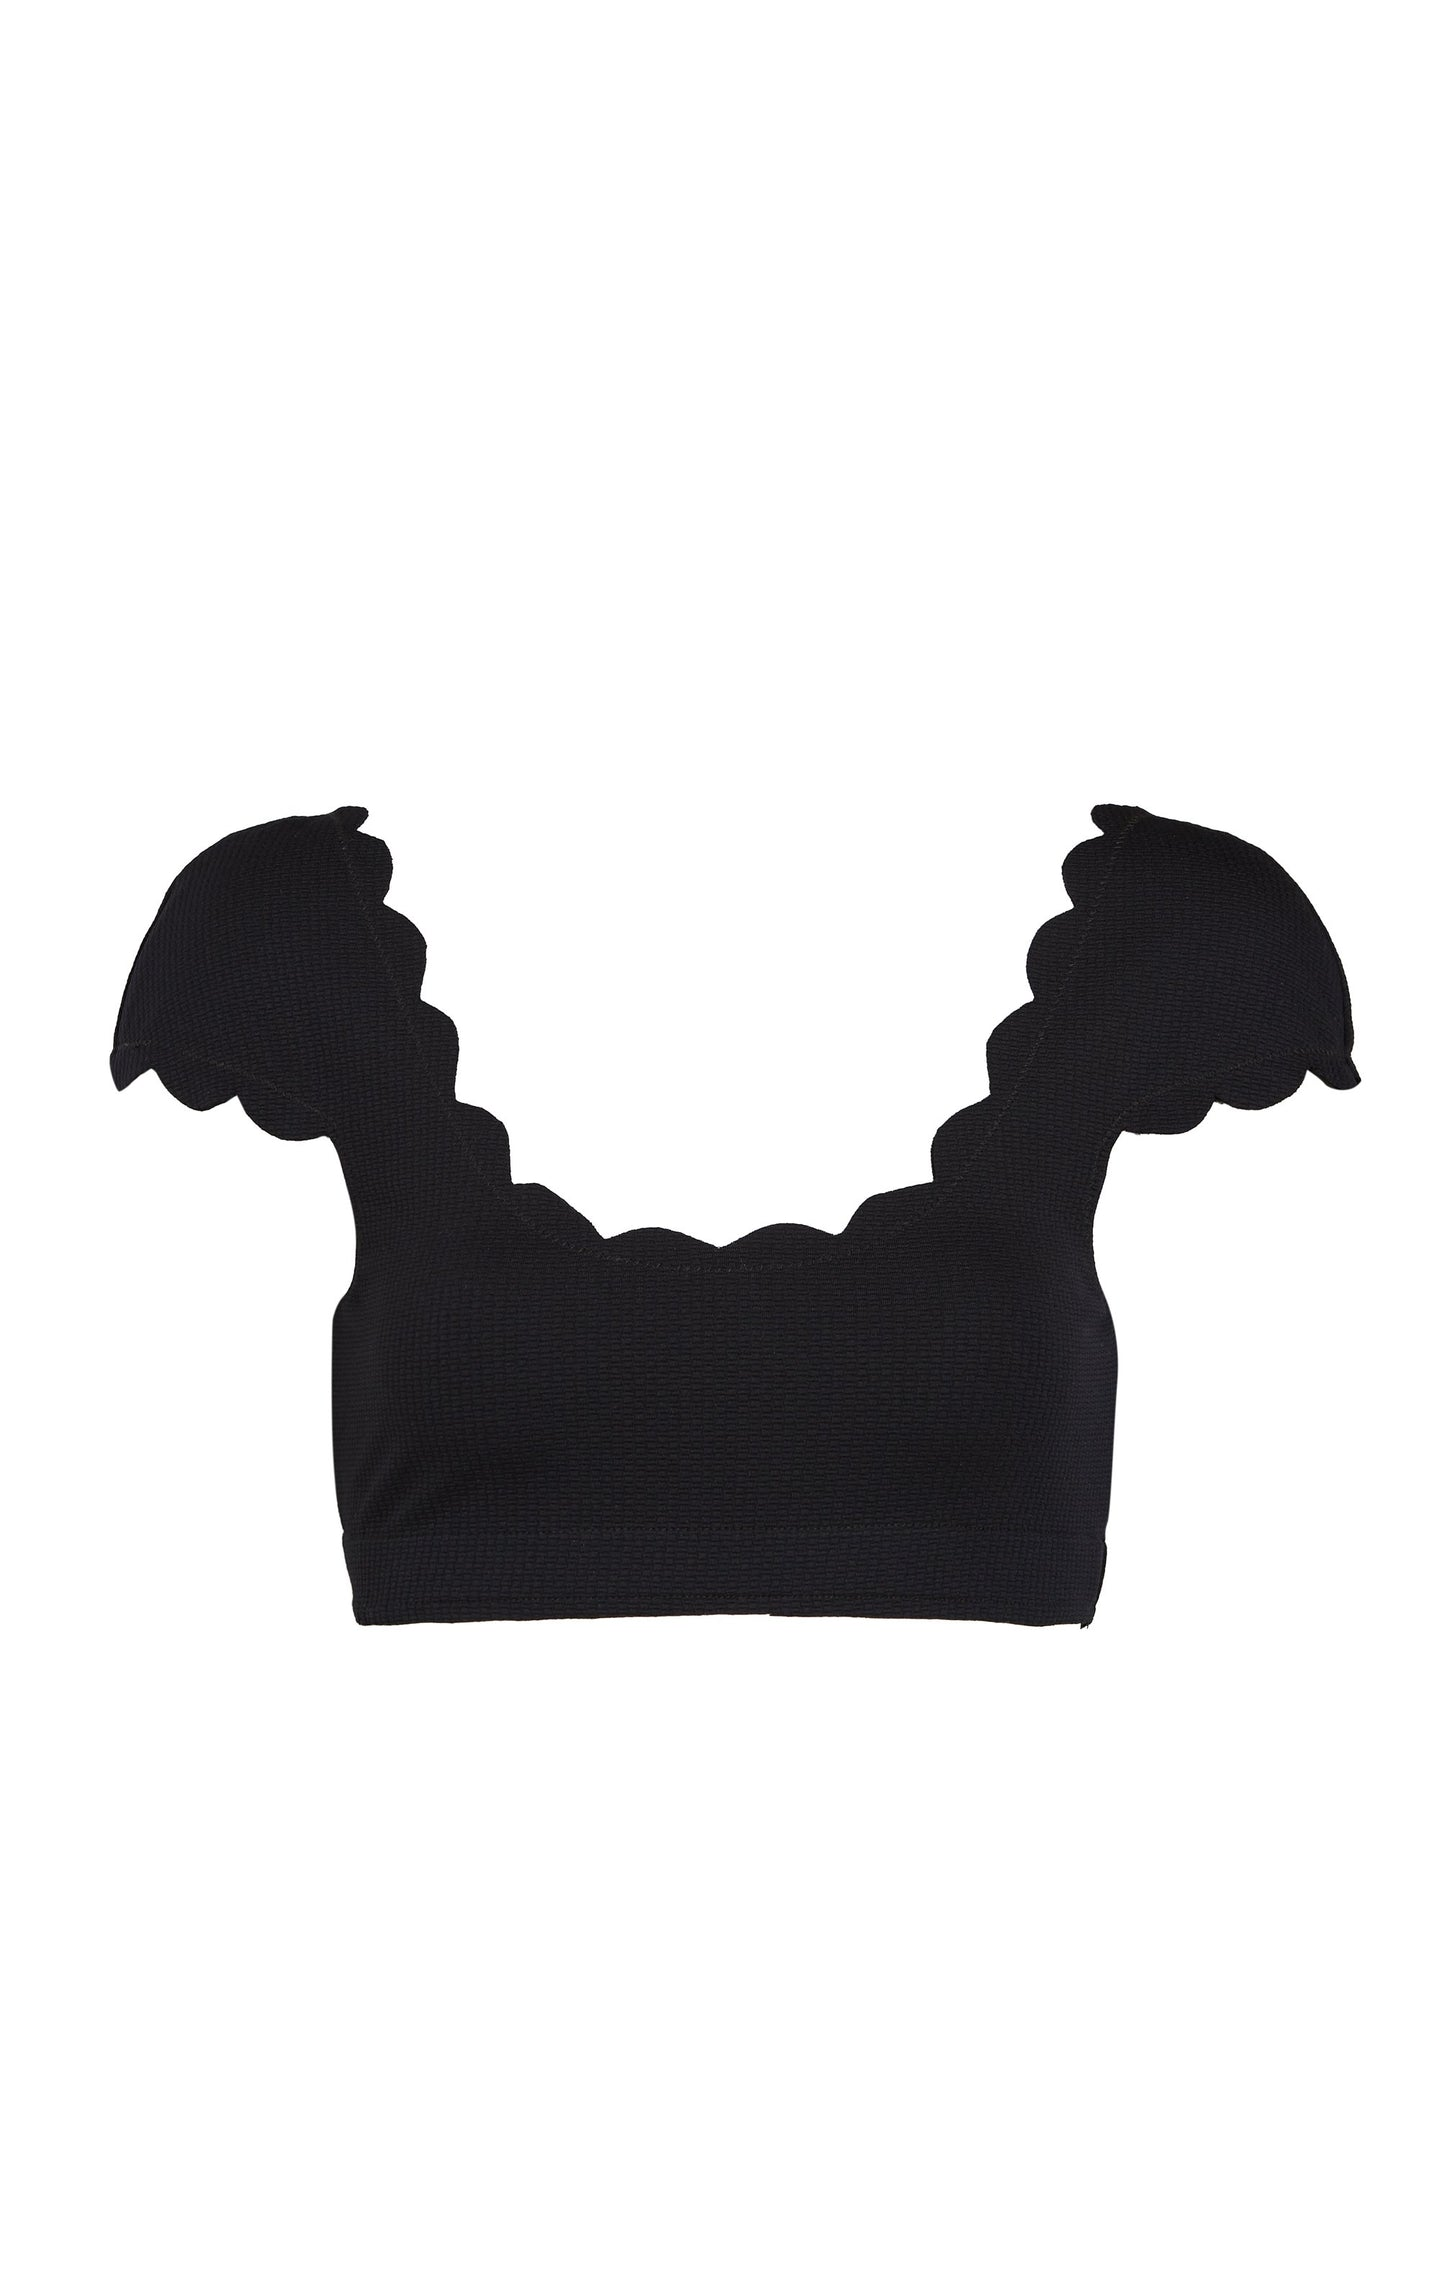 Scalloped Mexico Top in Black